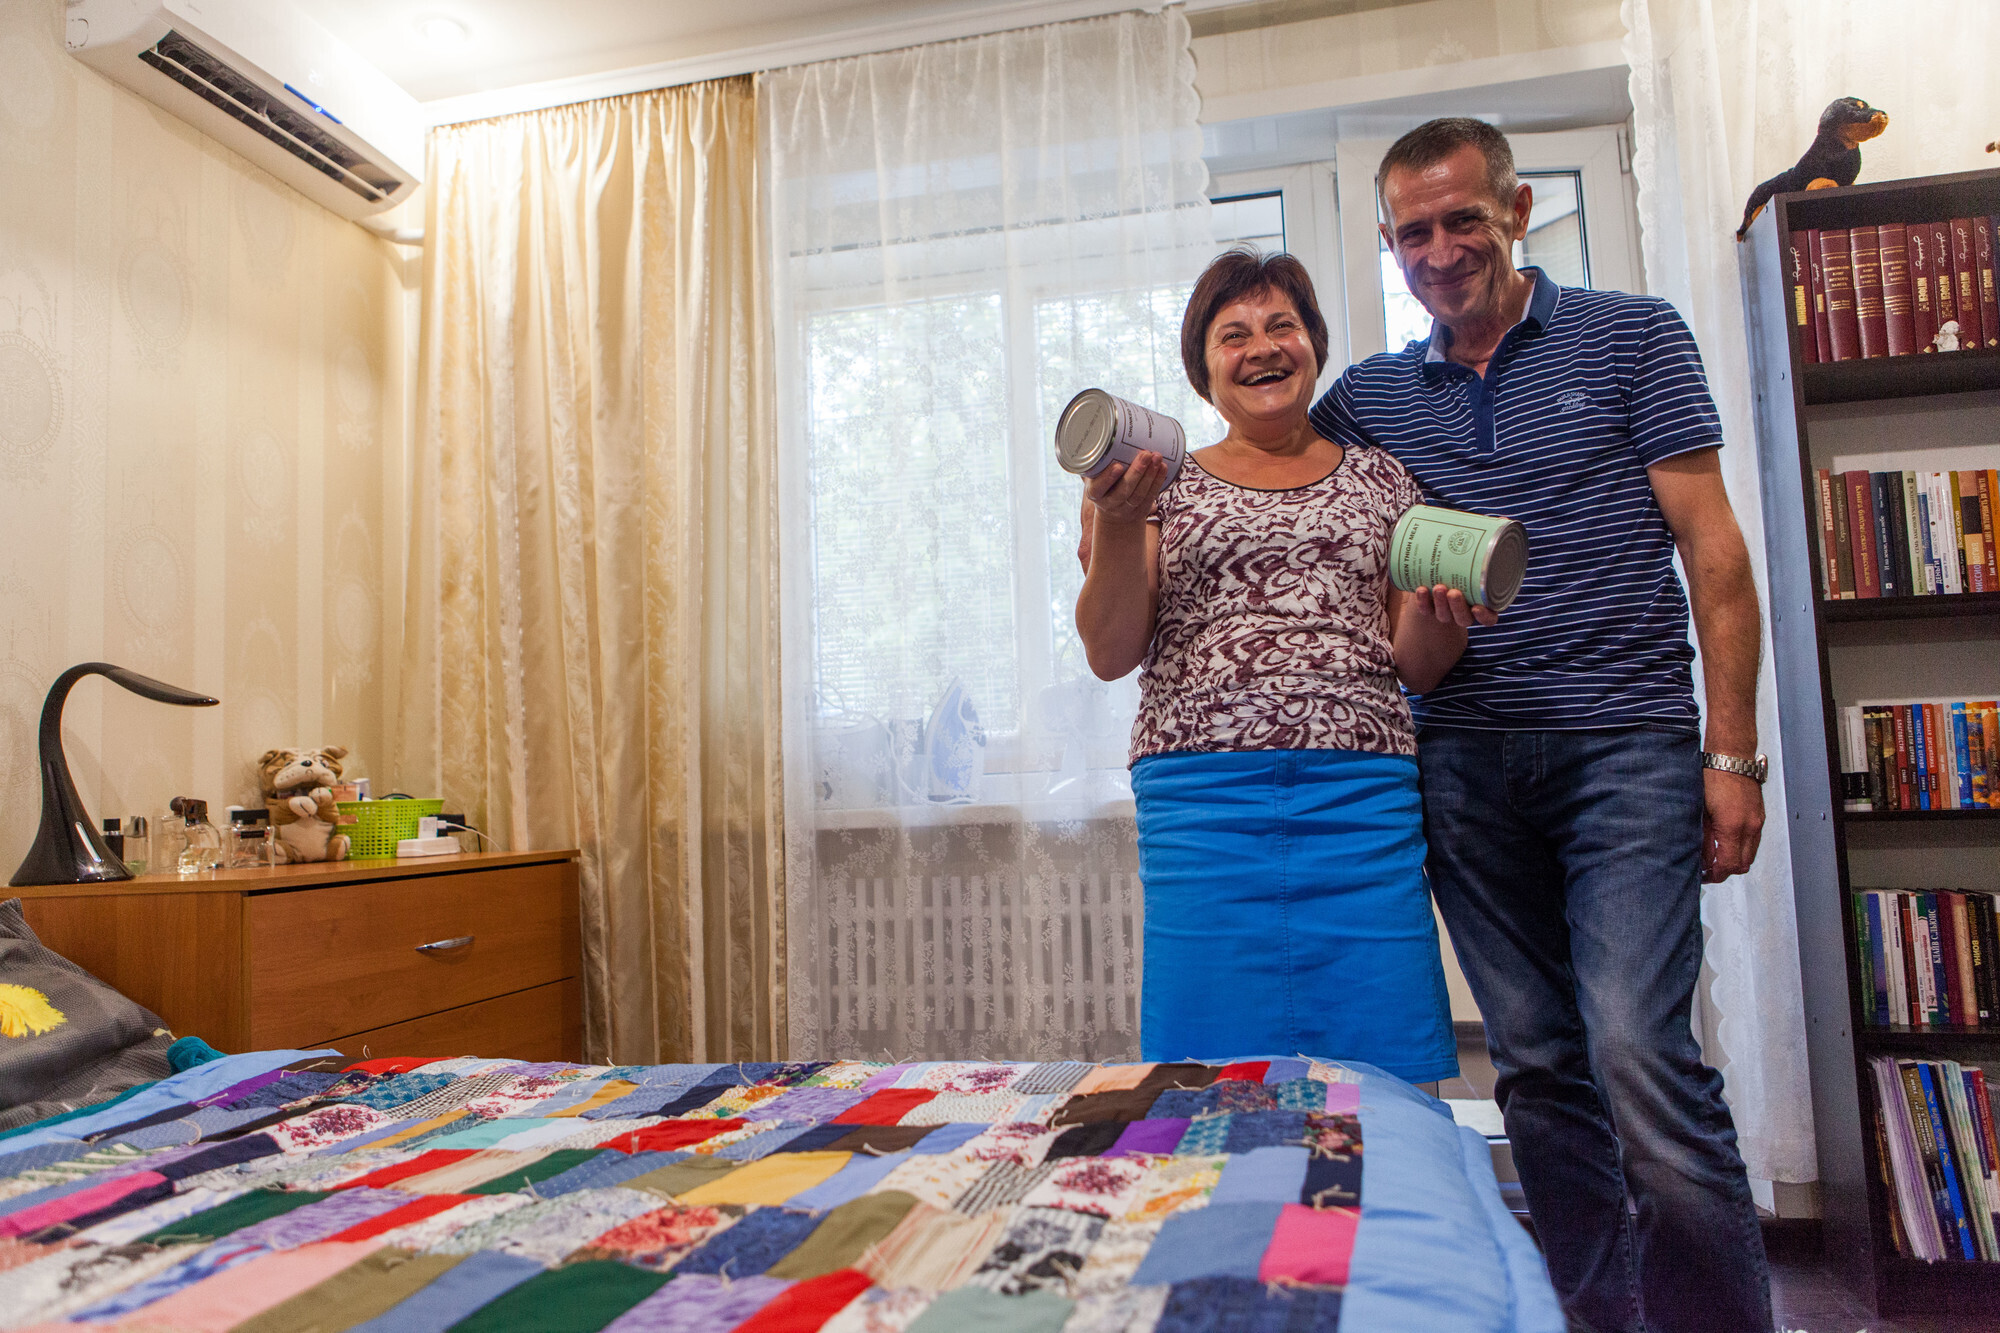 Igor Semyonov and his wife Larisa received MCC canned meat and comforters after fleeing conflict in eastern Ukraine. Thanks to your support, they were given food and shelter when they had none.  (MCC photo/Matthew Sawatzky)